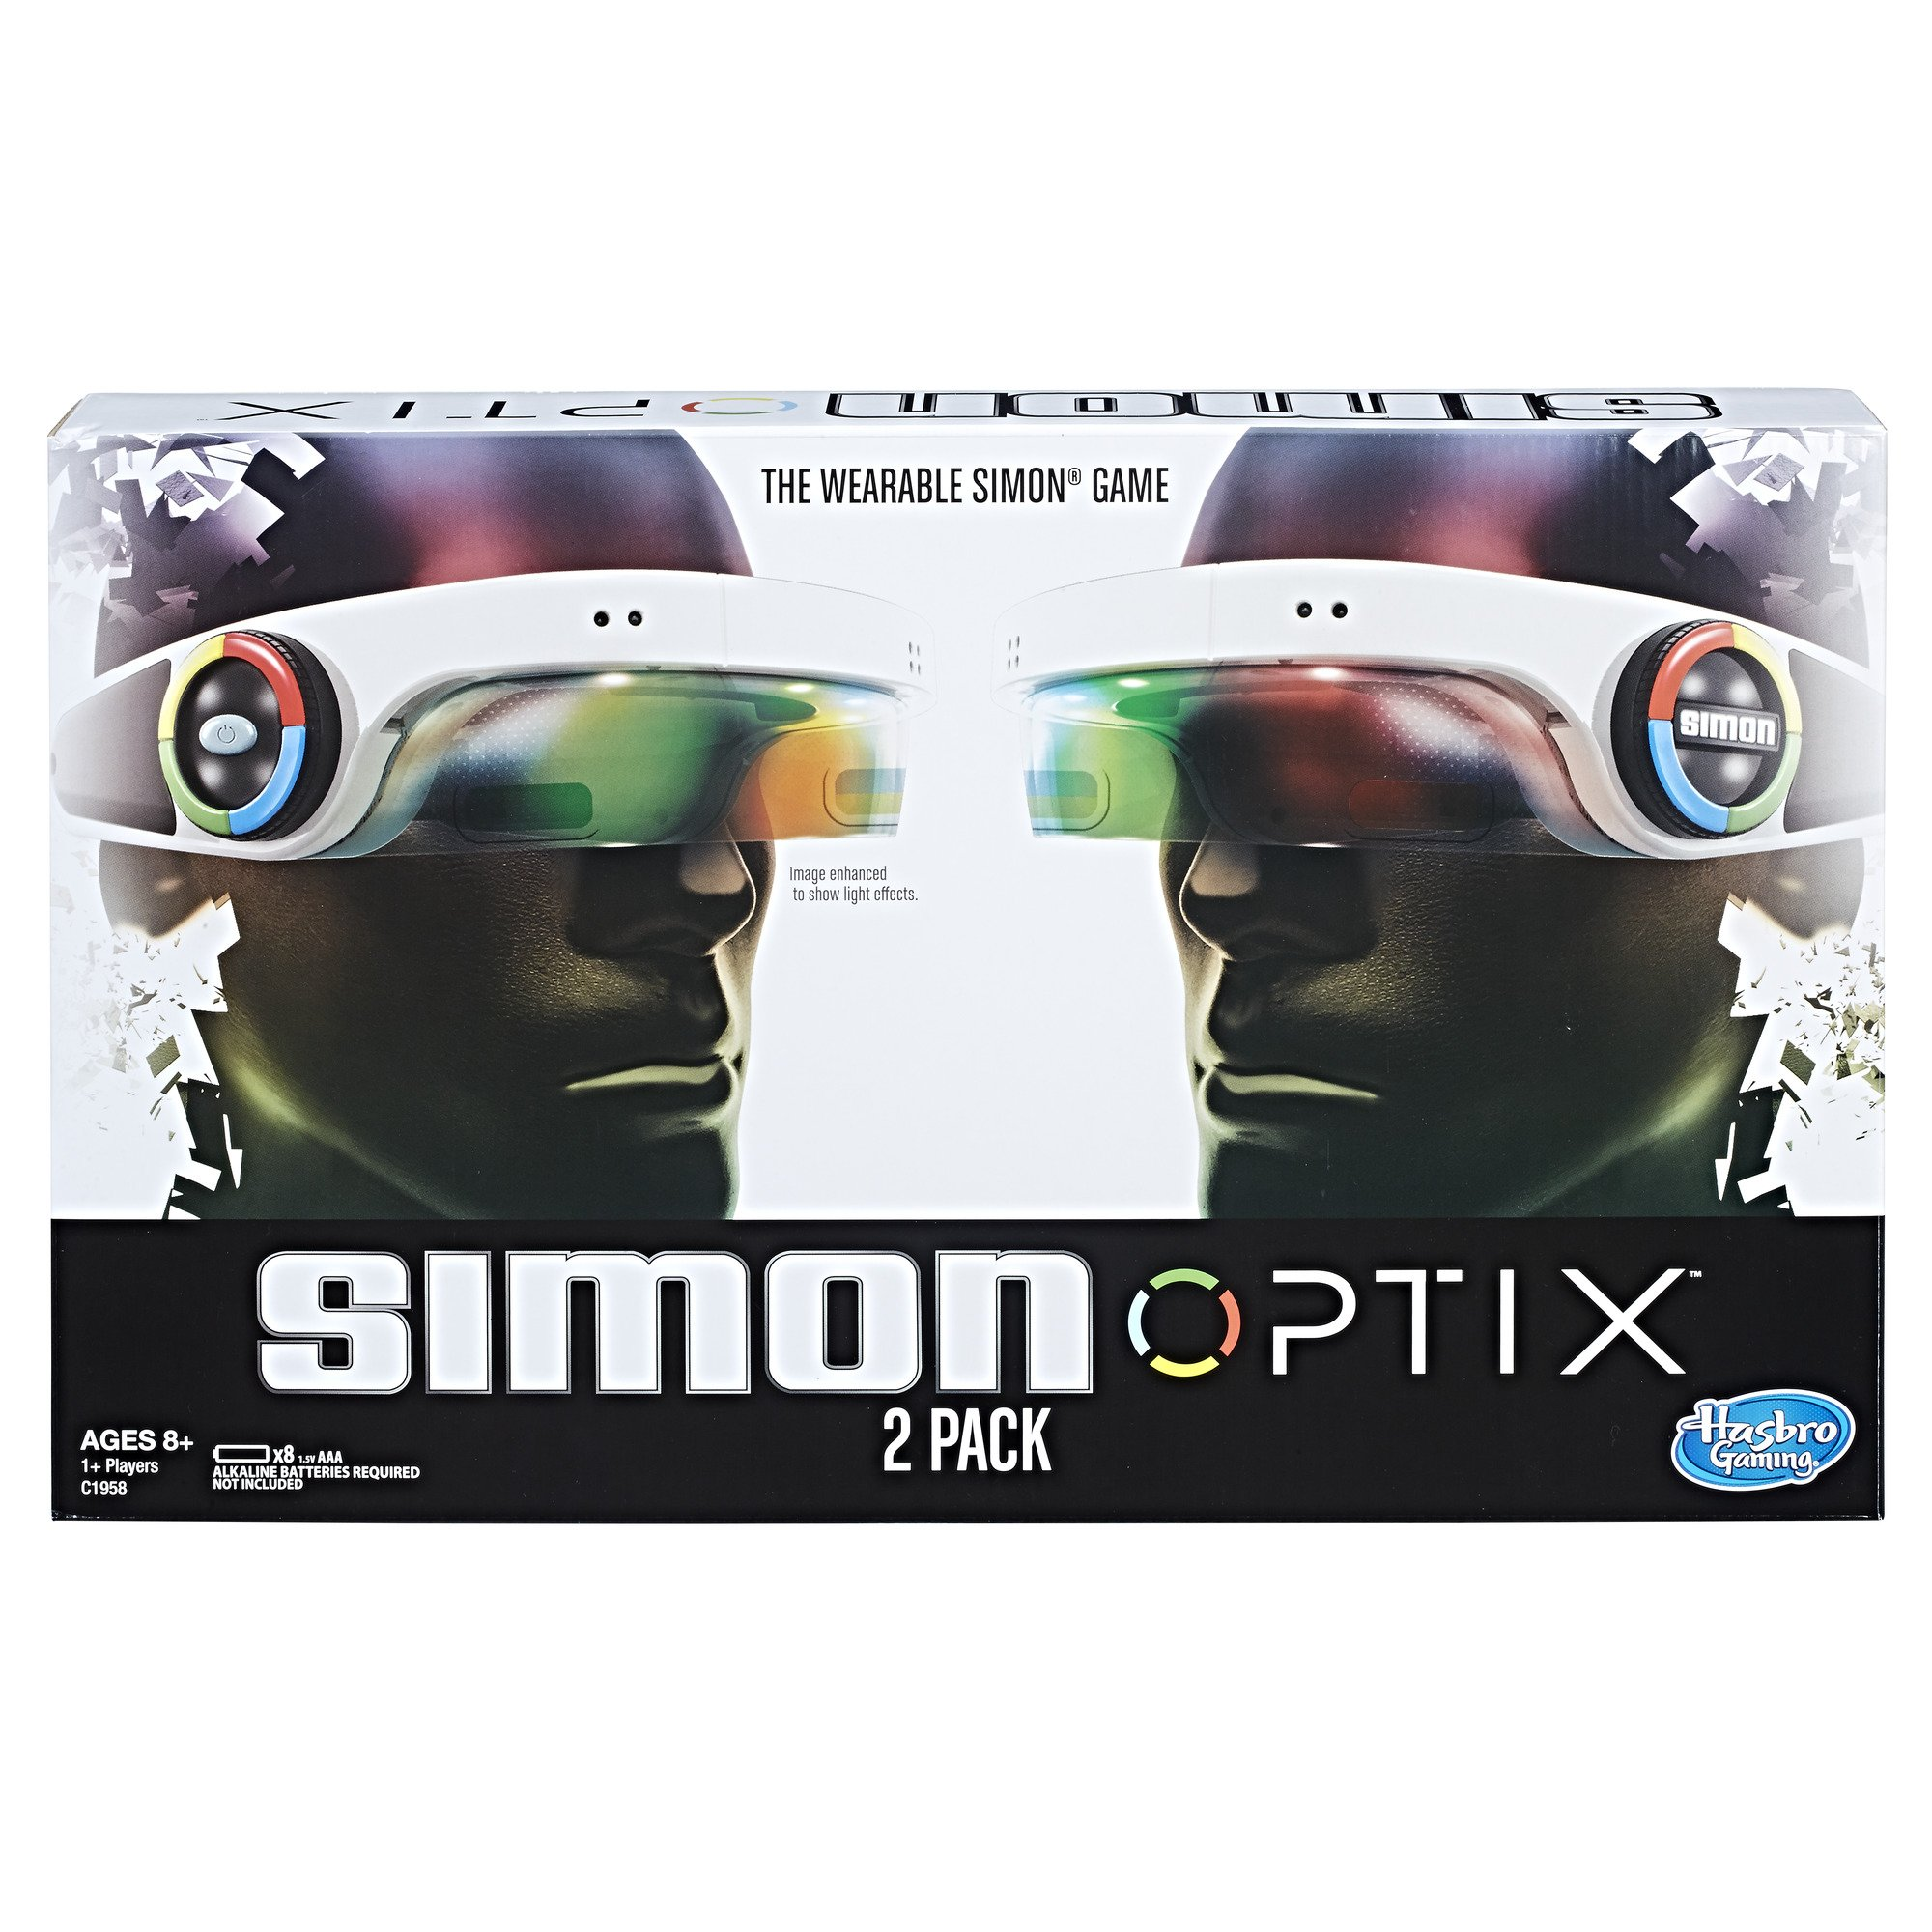 Simon Optix Game - 2 Headsets Included - Wearable Version of a Classic Game - Raise Your Hands in The Correct Color Pattern to Succeed - Play Solo or with Your Friends - Batteries Not Included by Hasbro Gaming